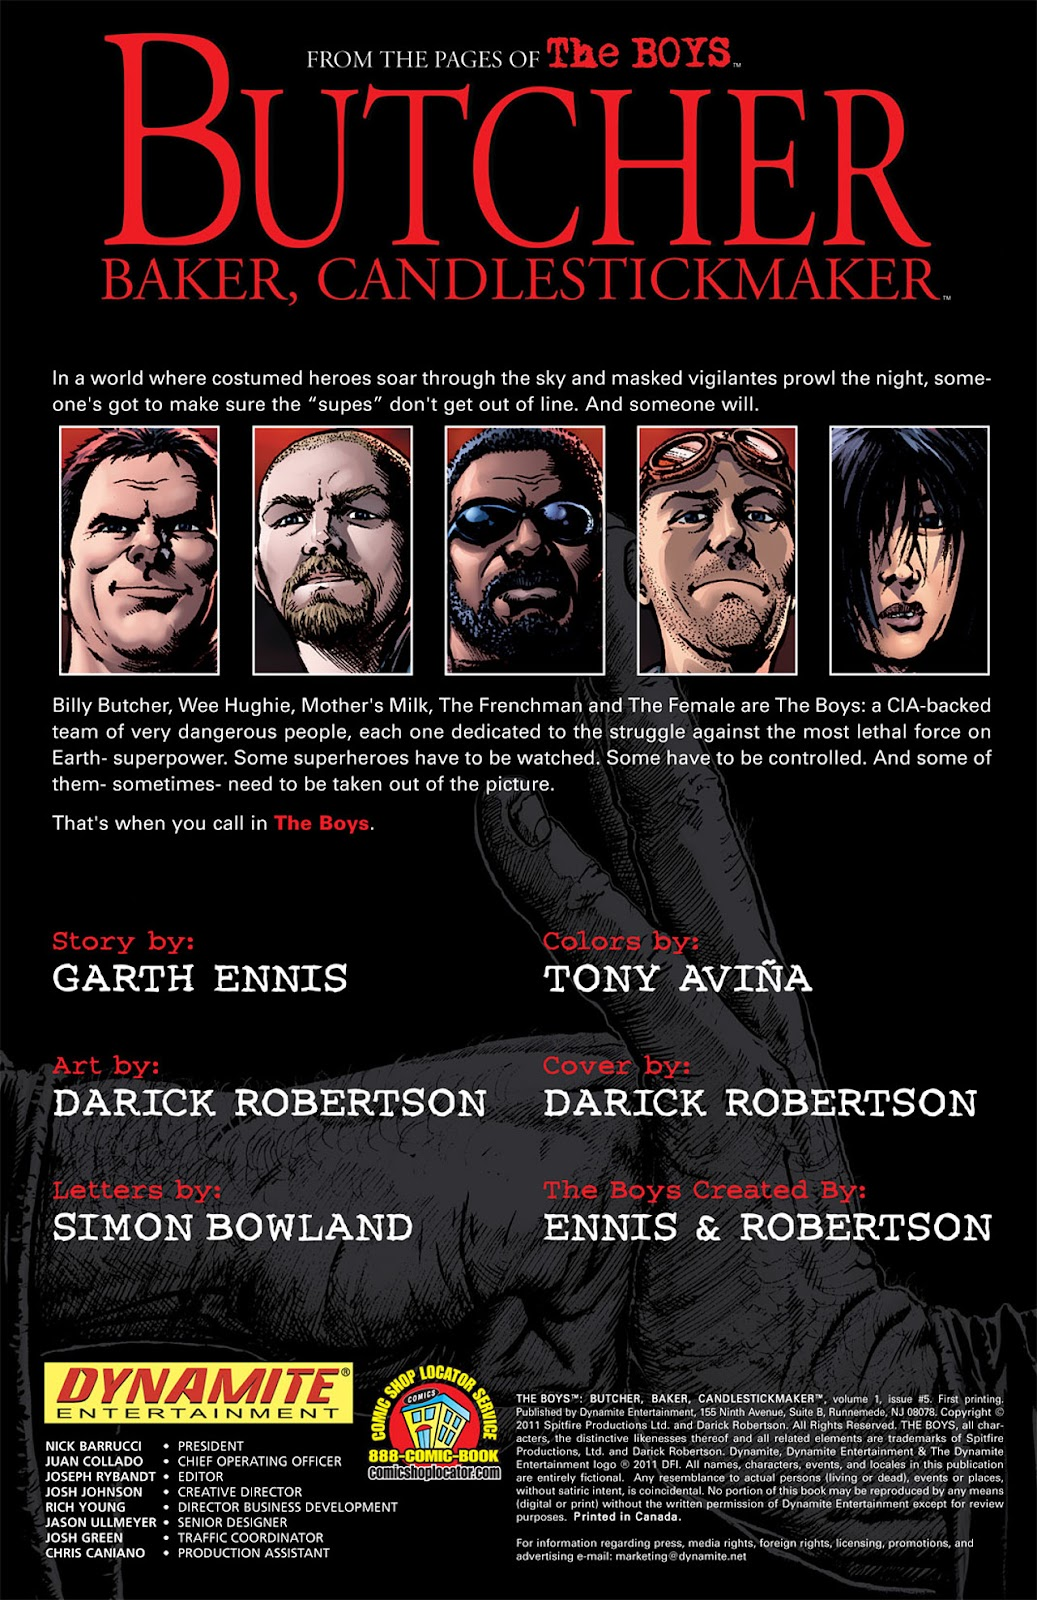 Read online The Boys: Butcher, Baker, Candlestickmaker comic -  Issue #5 - 2